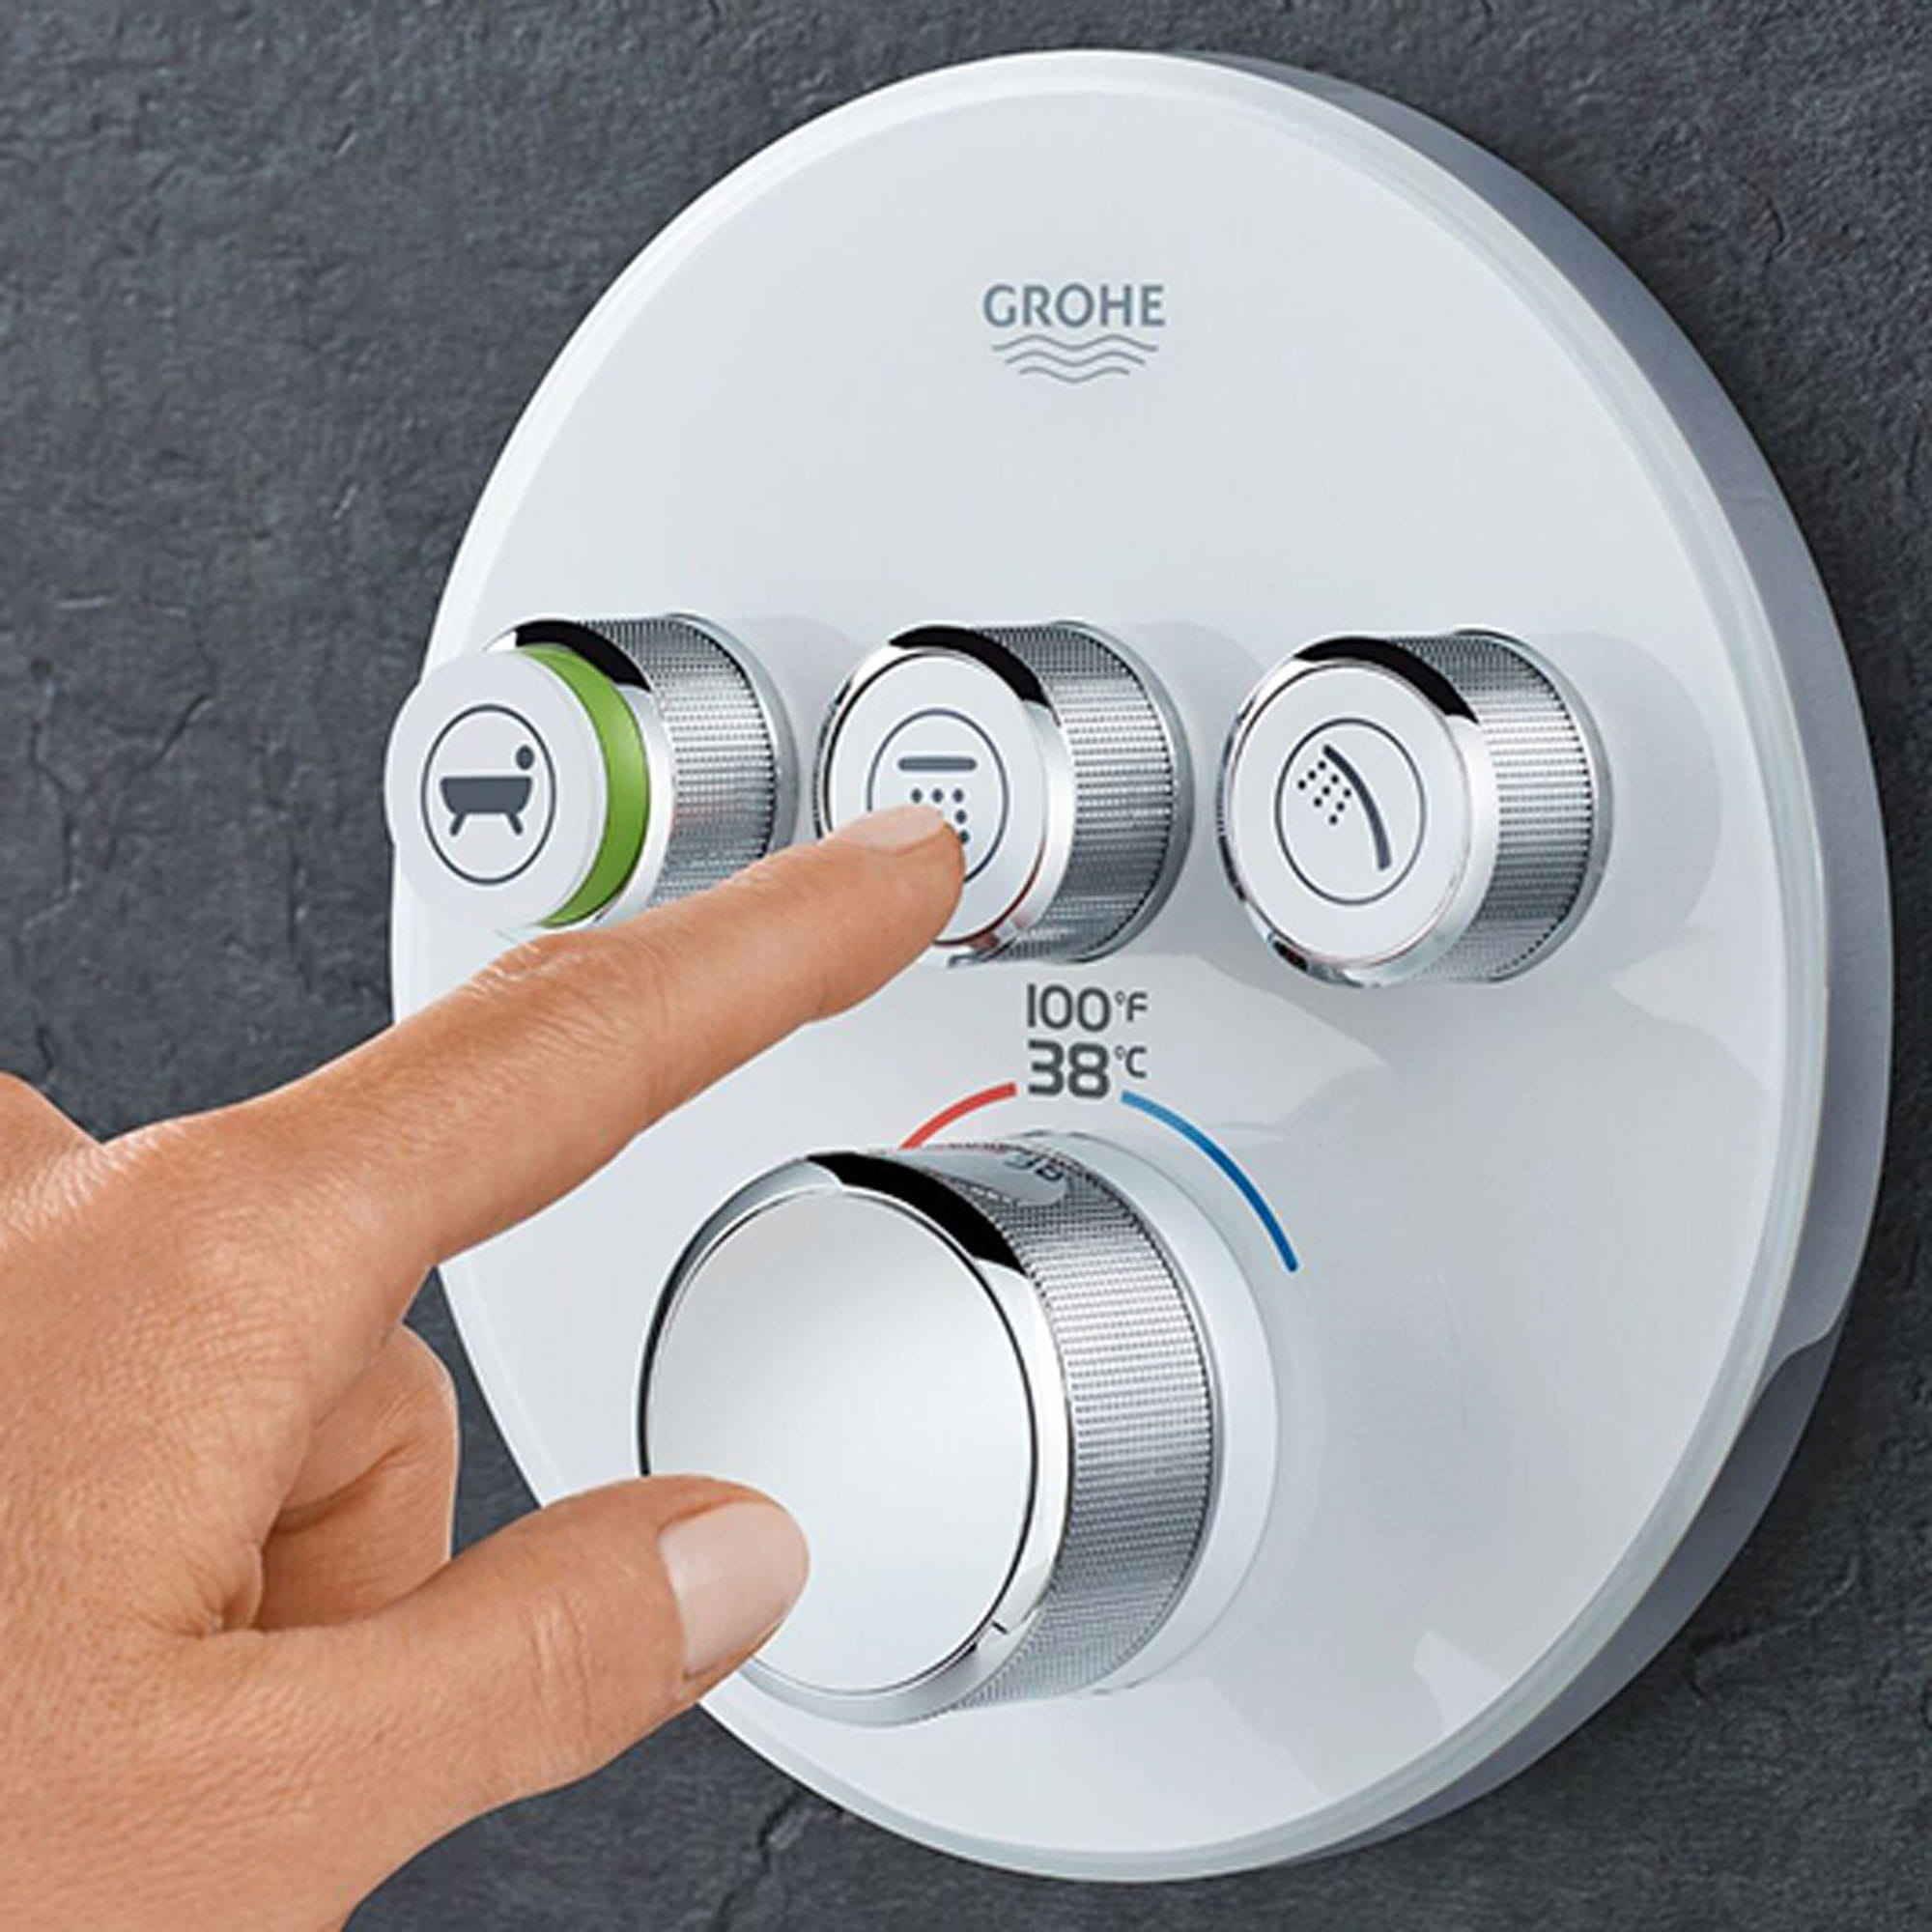 person pressing button Grohe shower knob